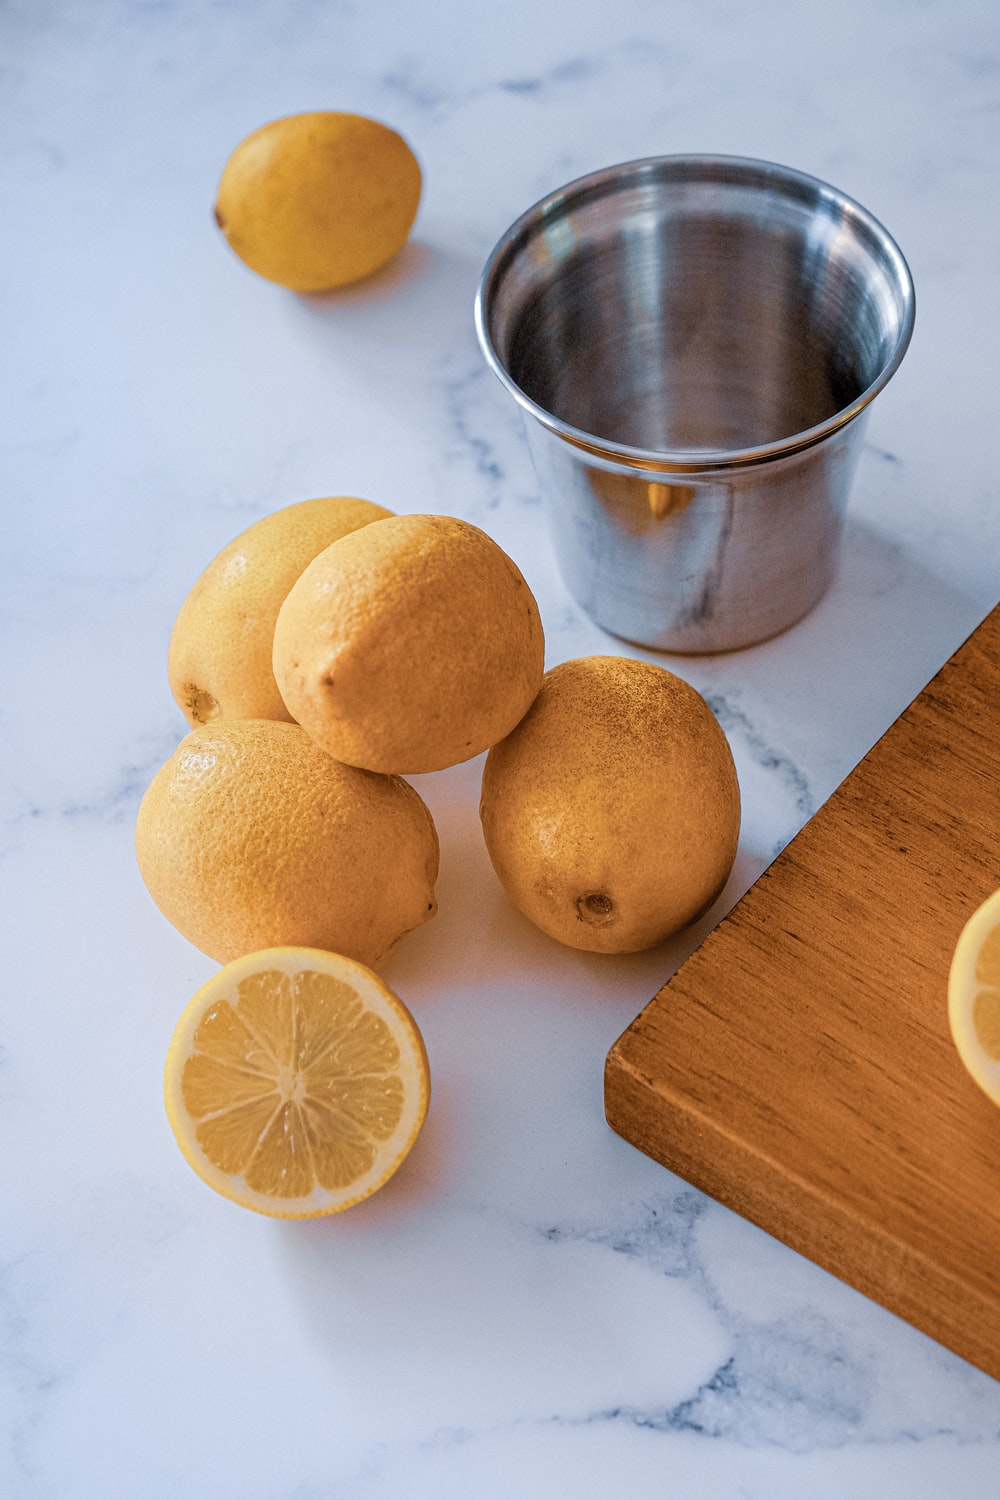 lemon fruits and gray stainless steel cup